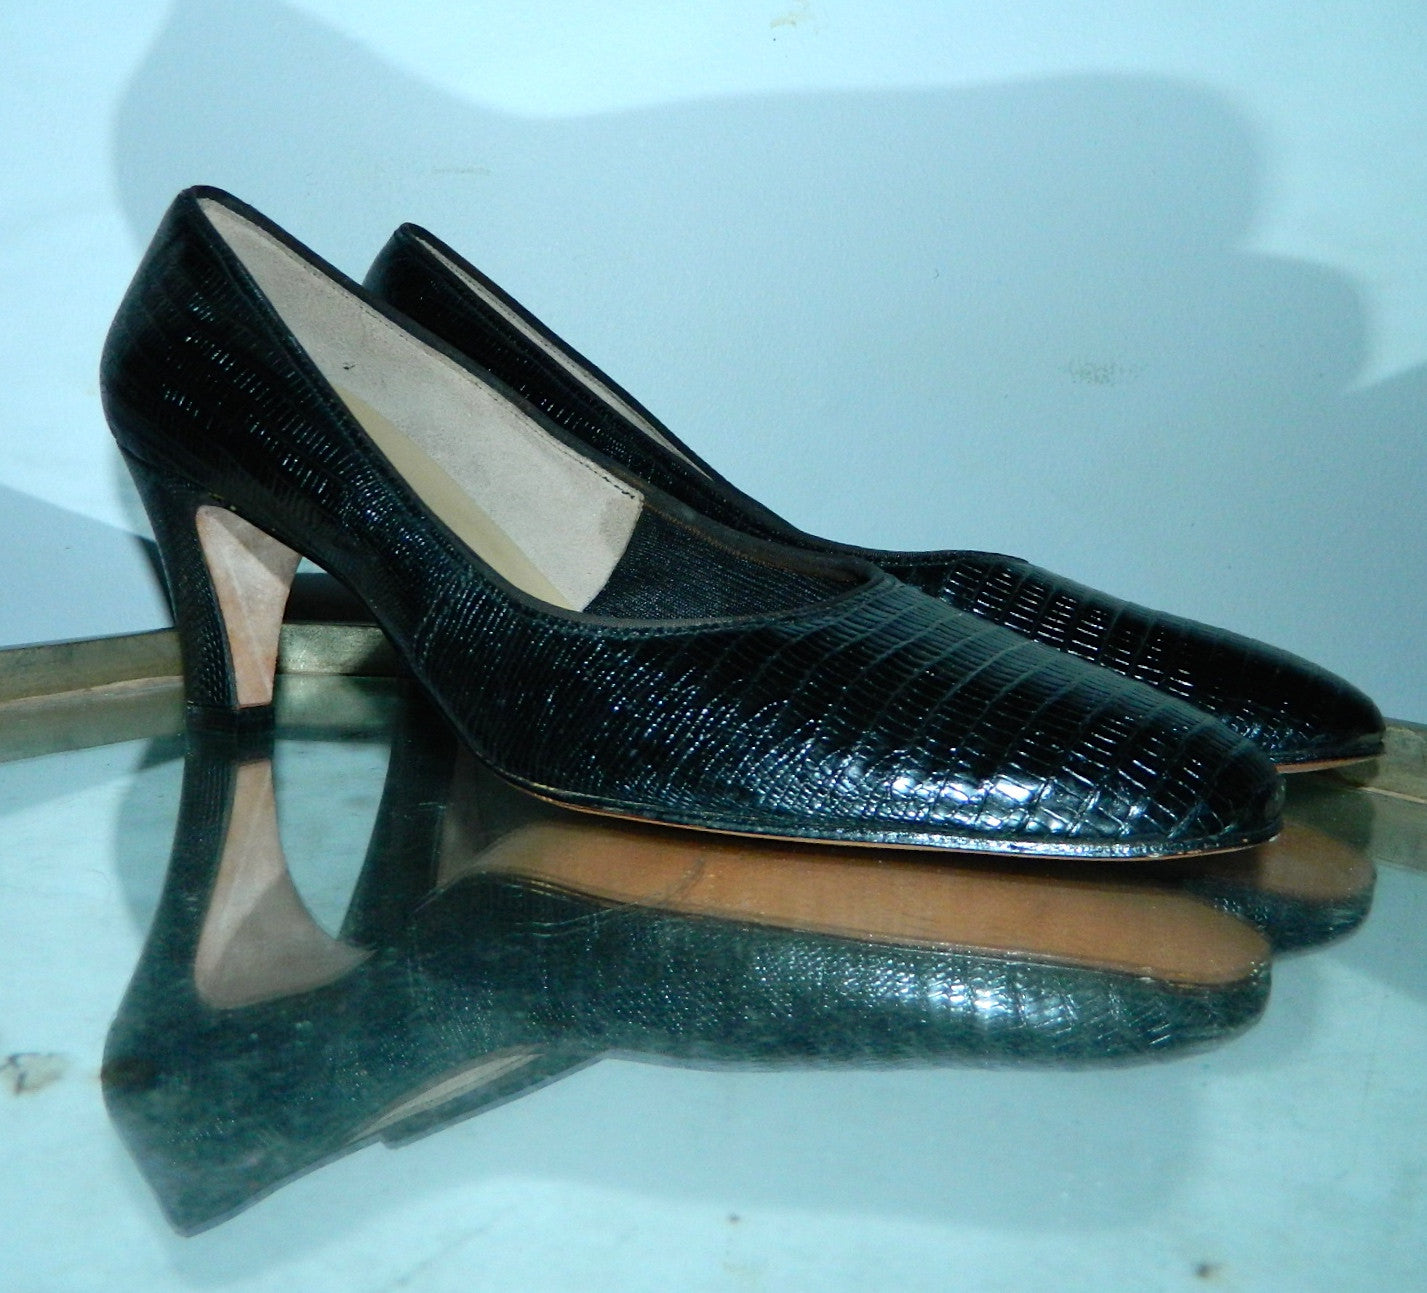 vintage 1960s black LIZARD heels shoes 7 1/2 N